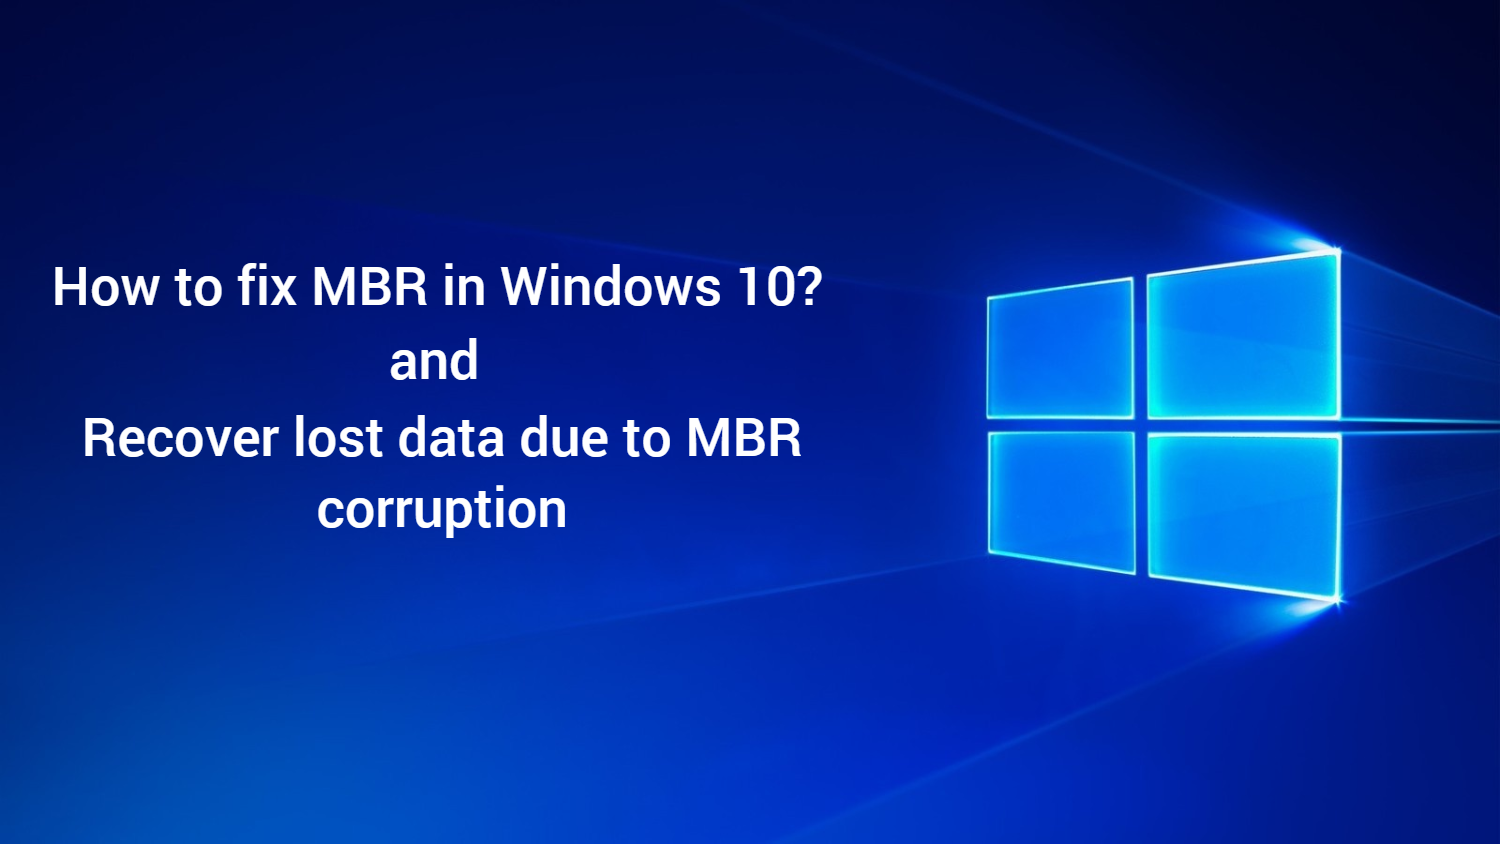 MBR corruption